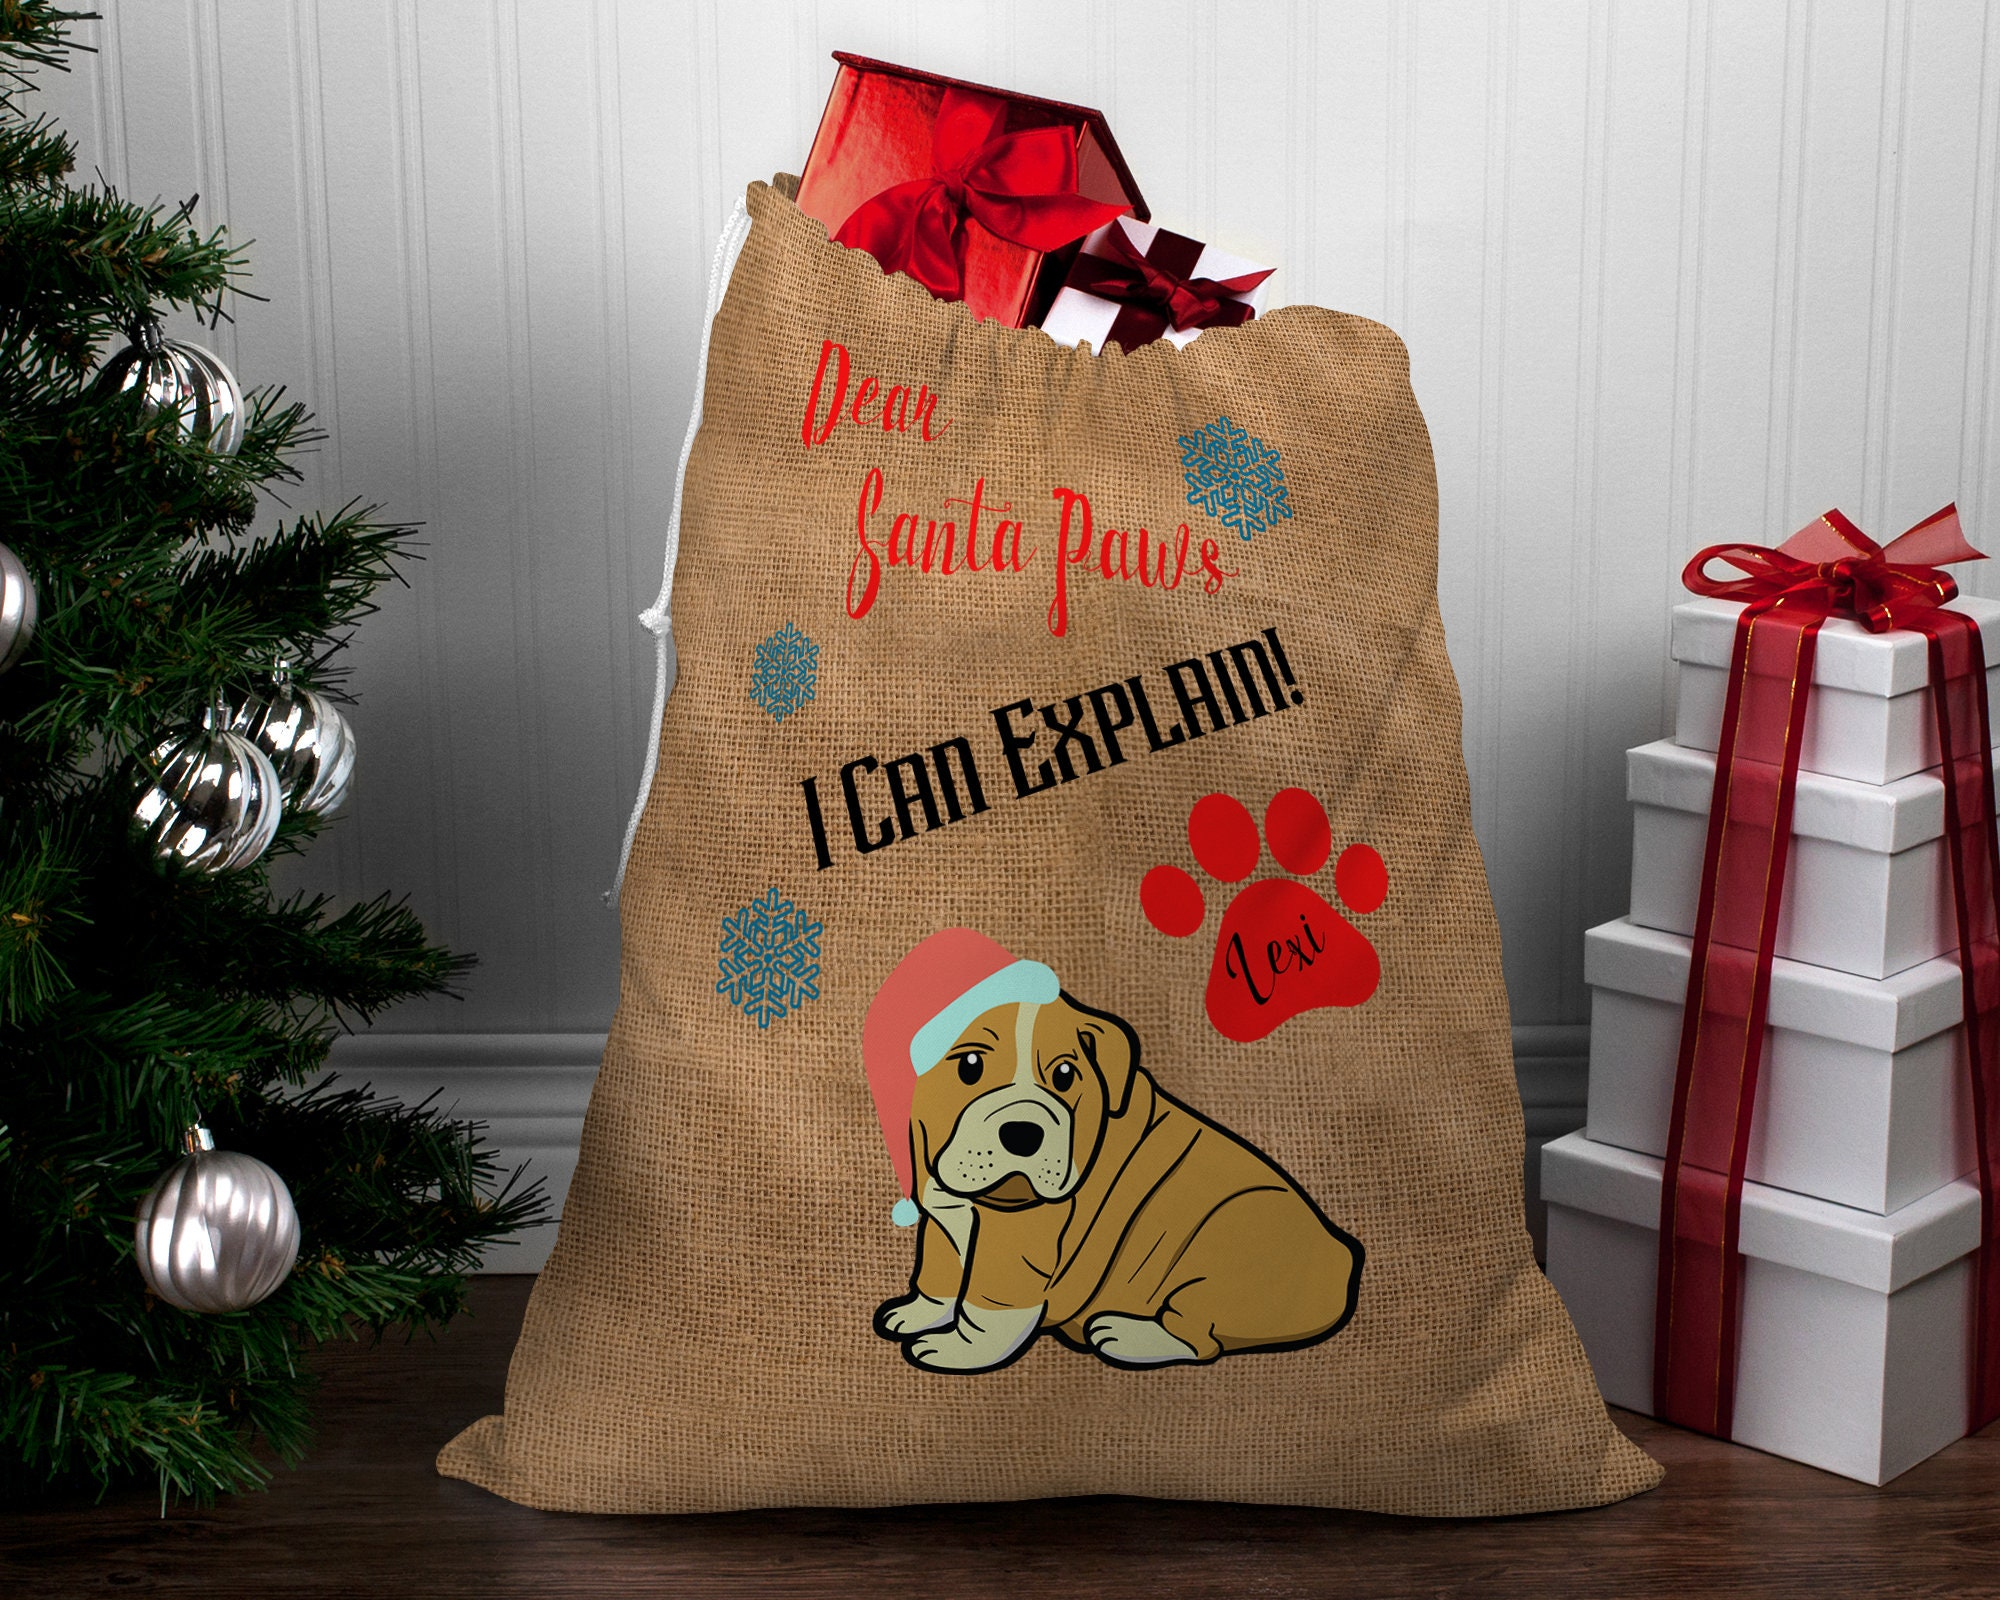 LARGE Personalized Hessian Santa Paws Sack CUSTOM NAME